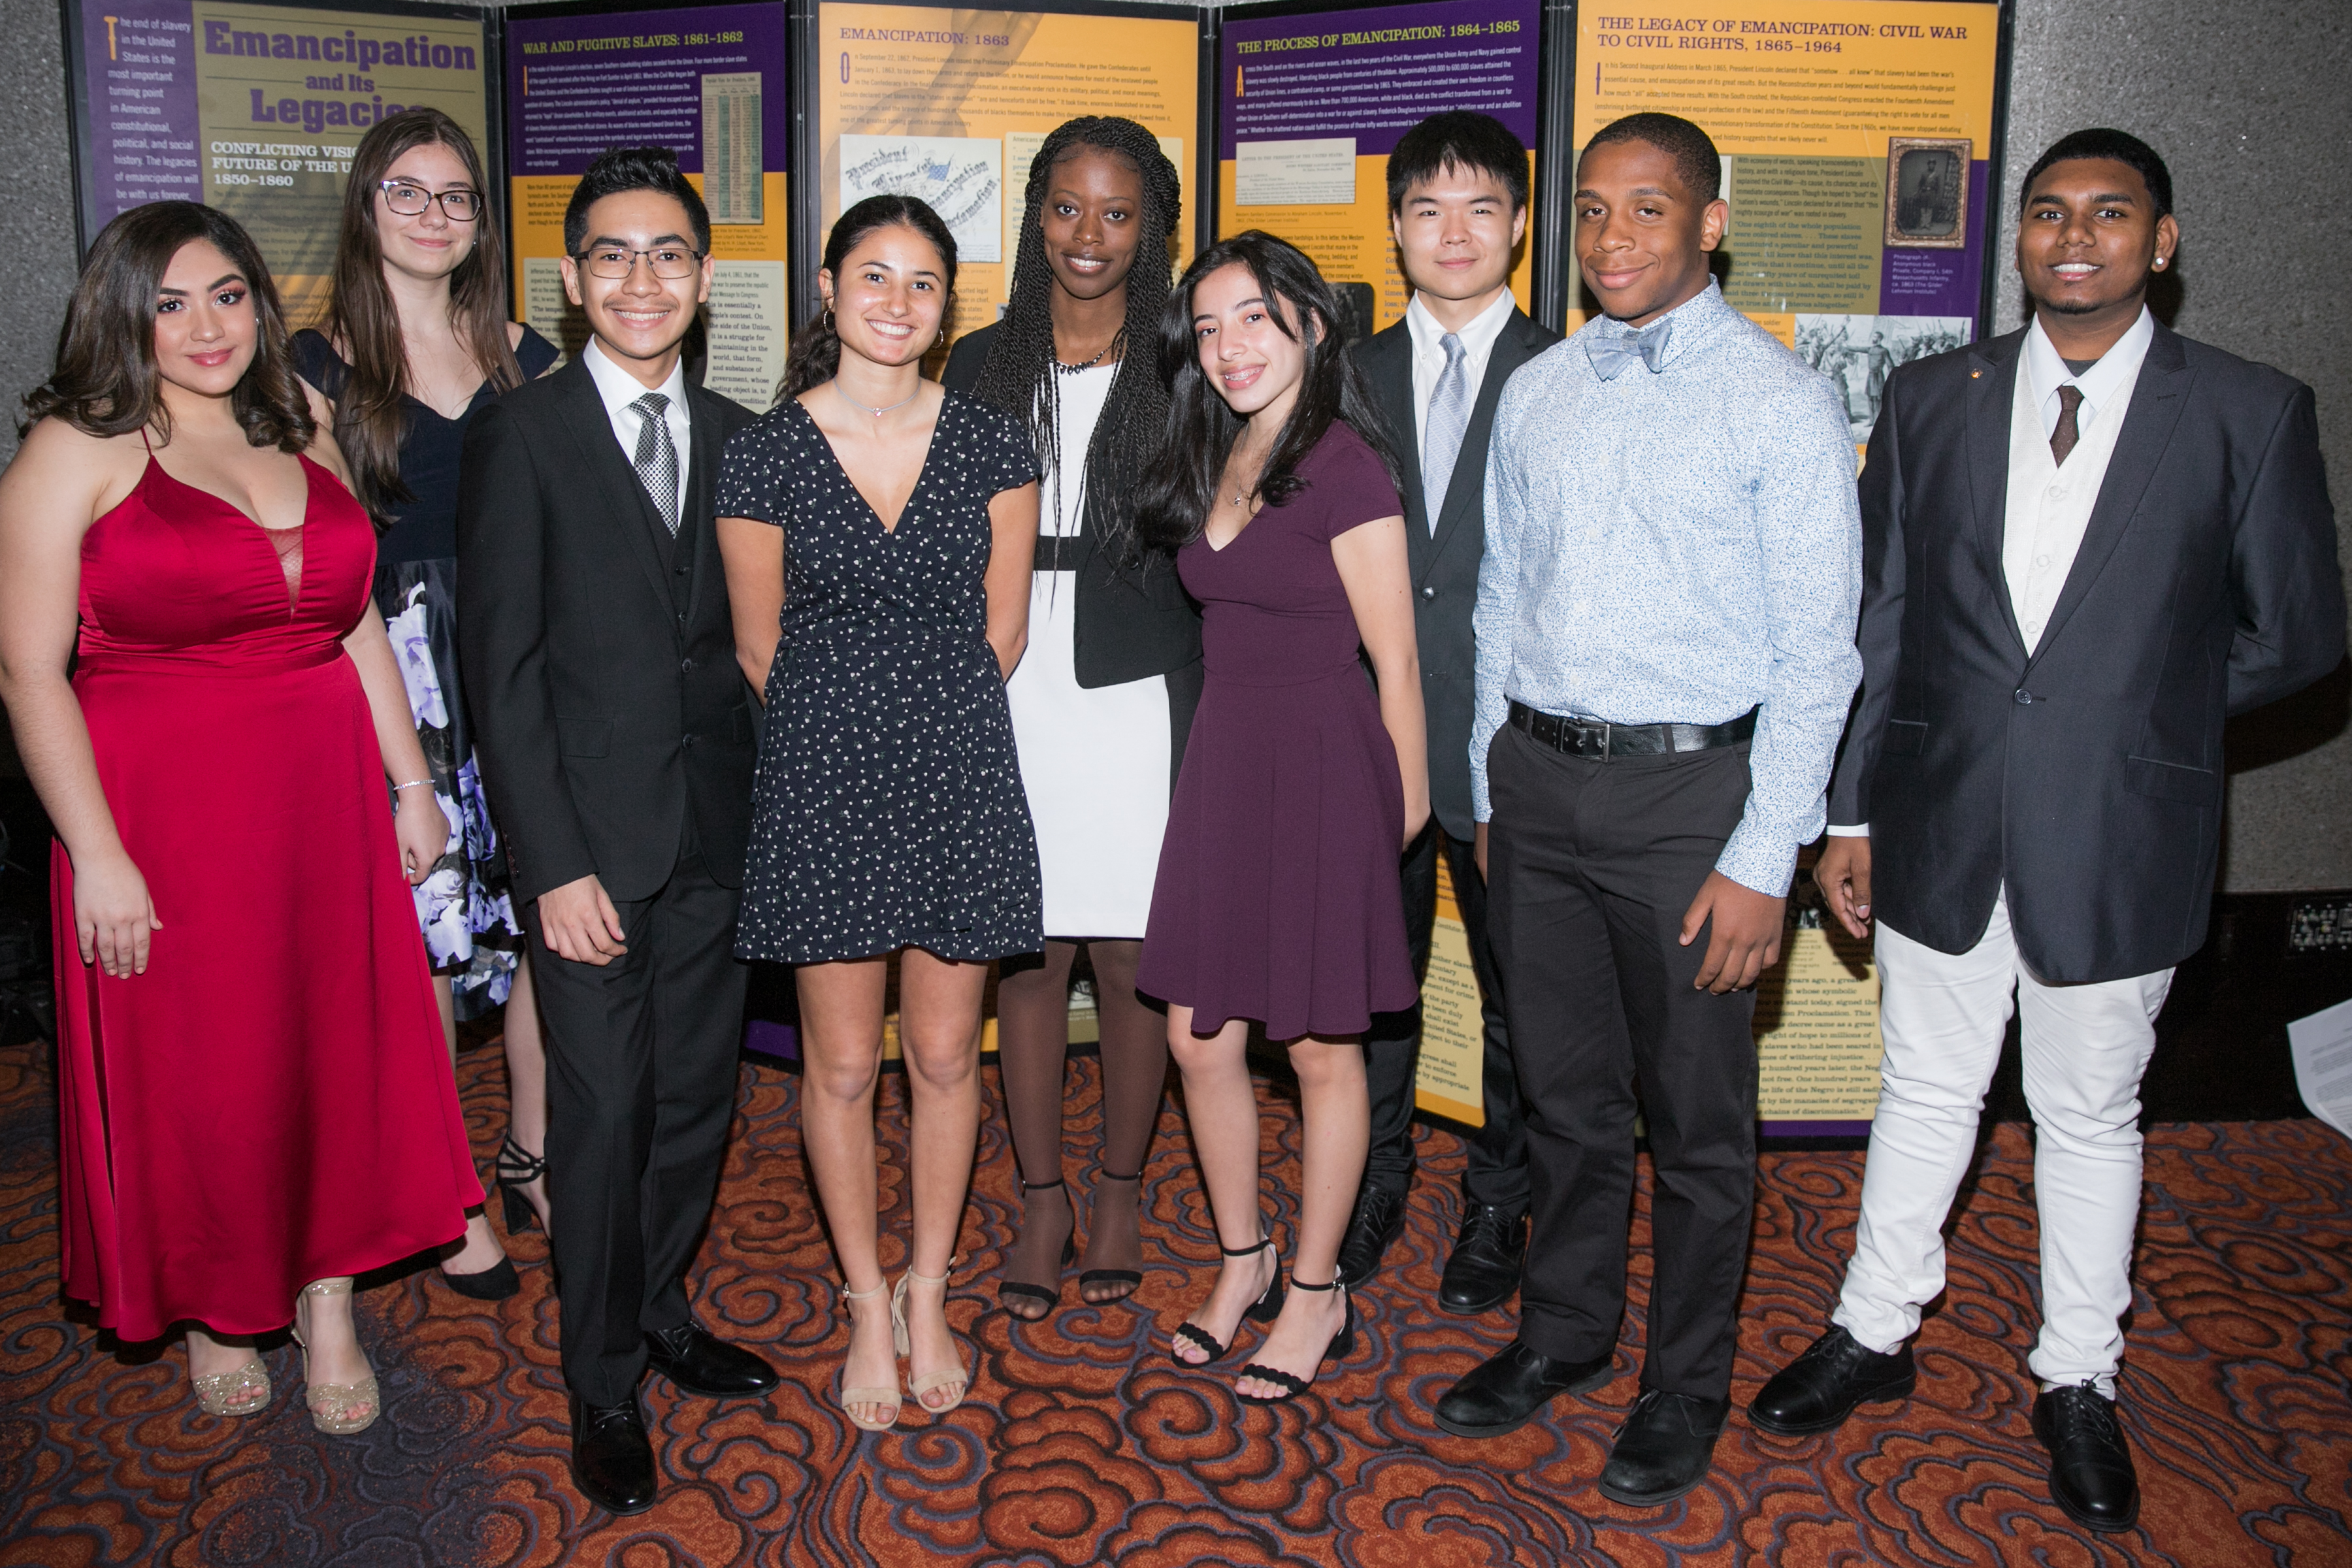 Student presenters and performers at the 2019 Gilder Lehrman Institute Gala